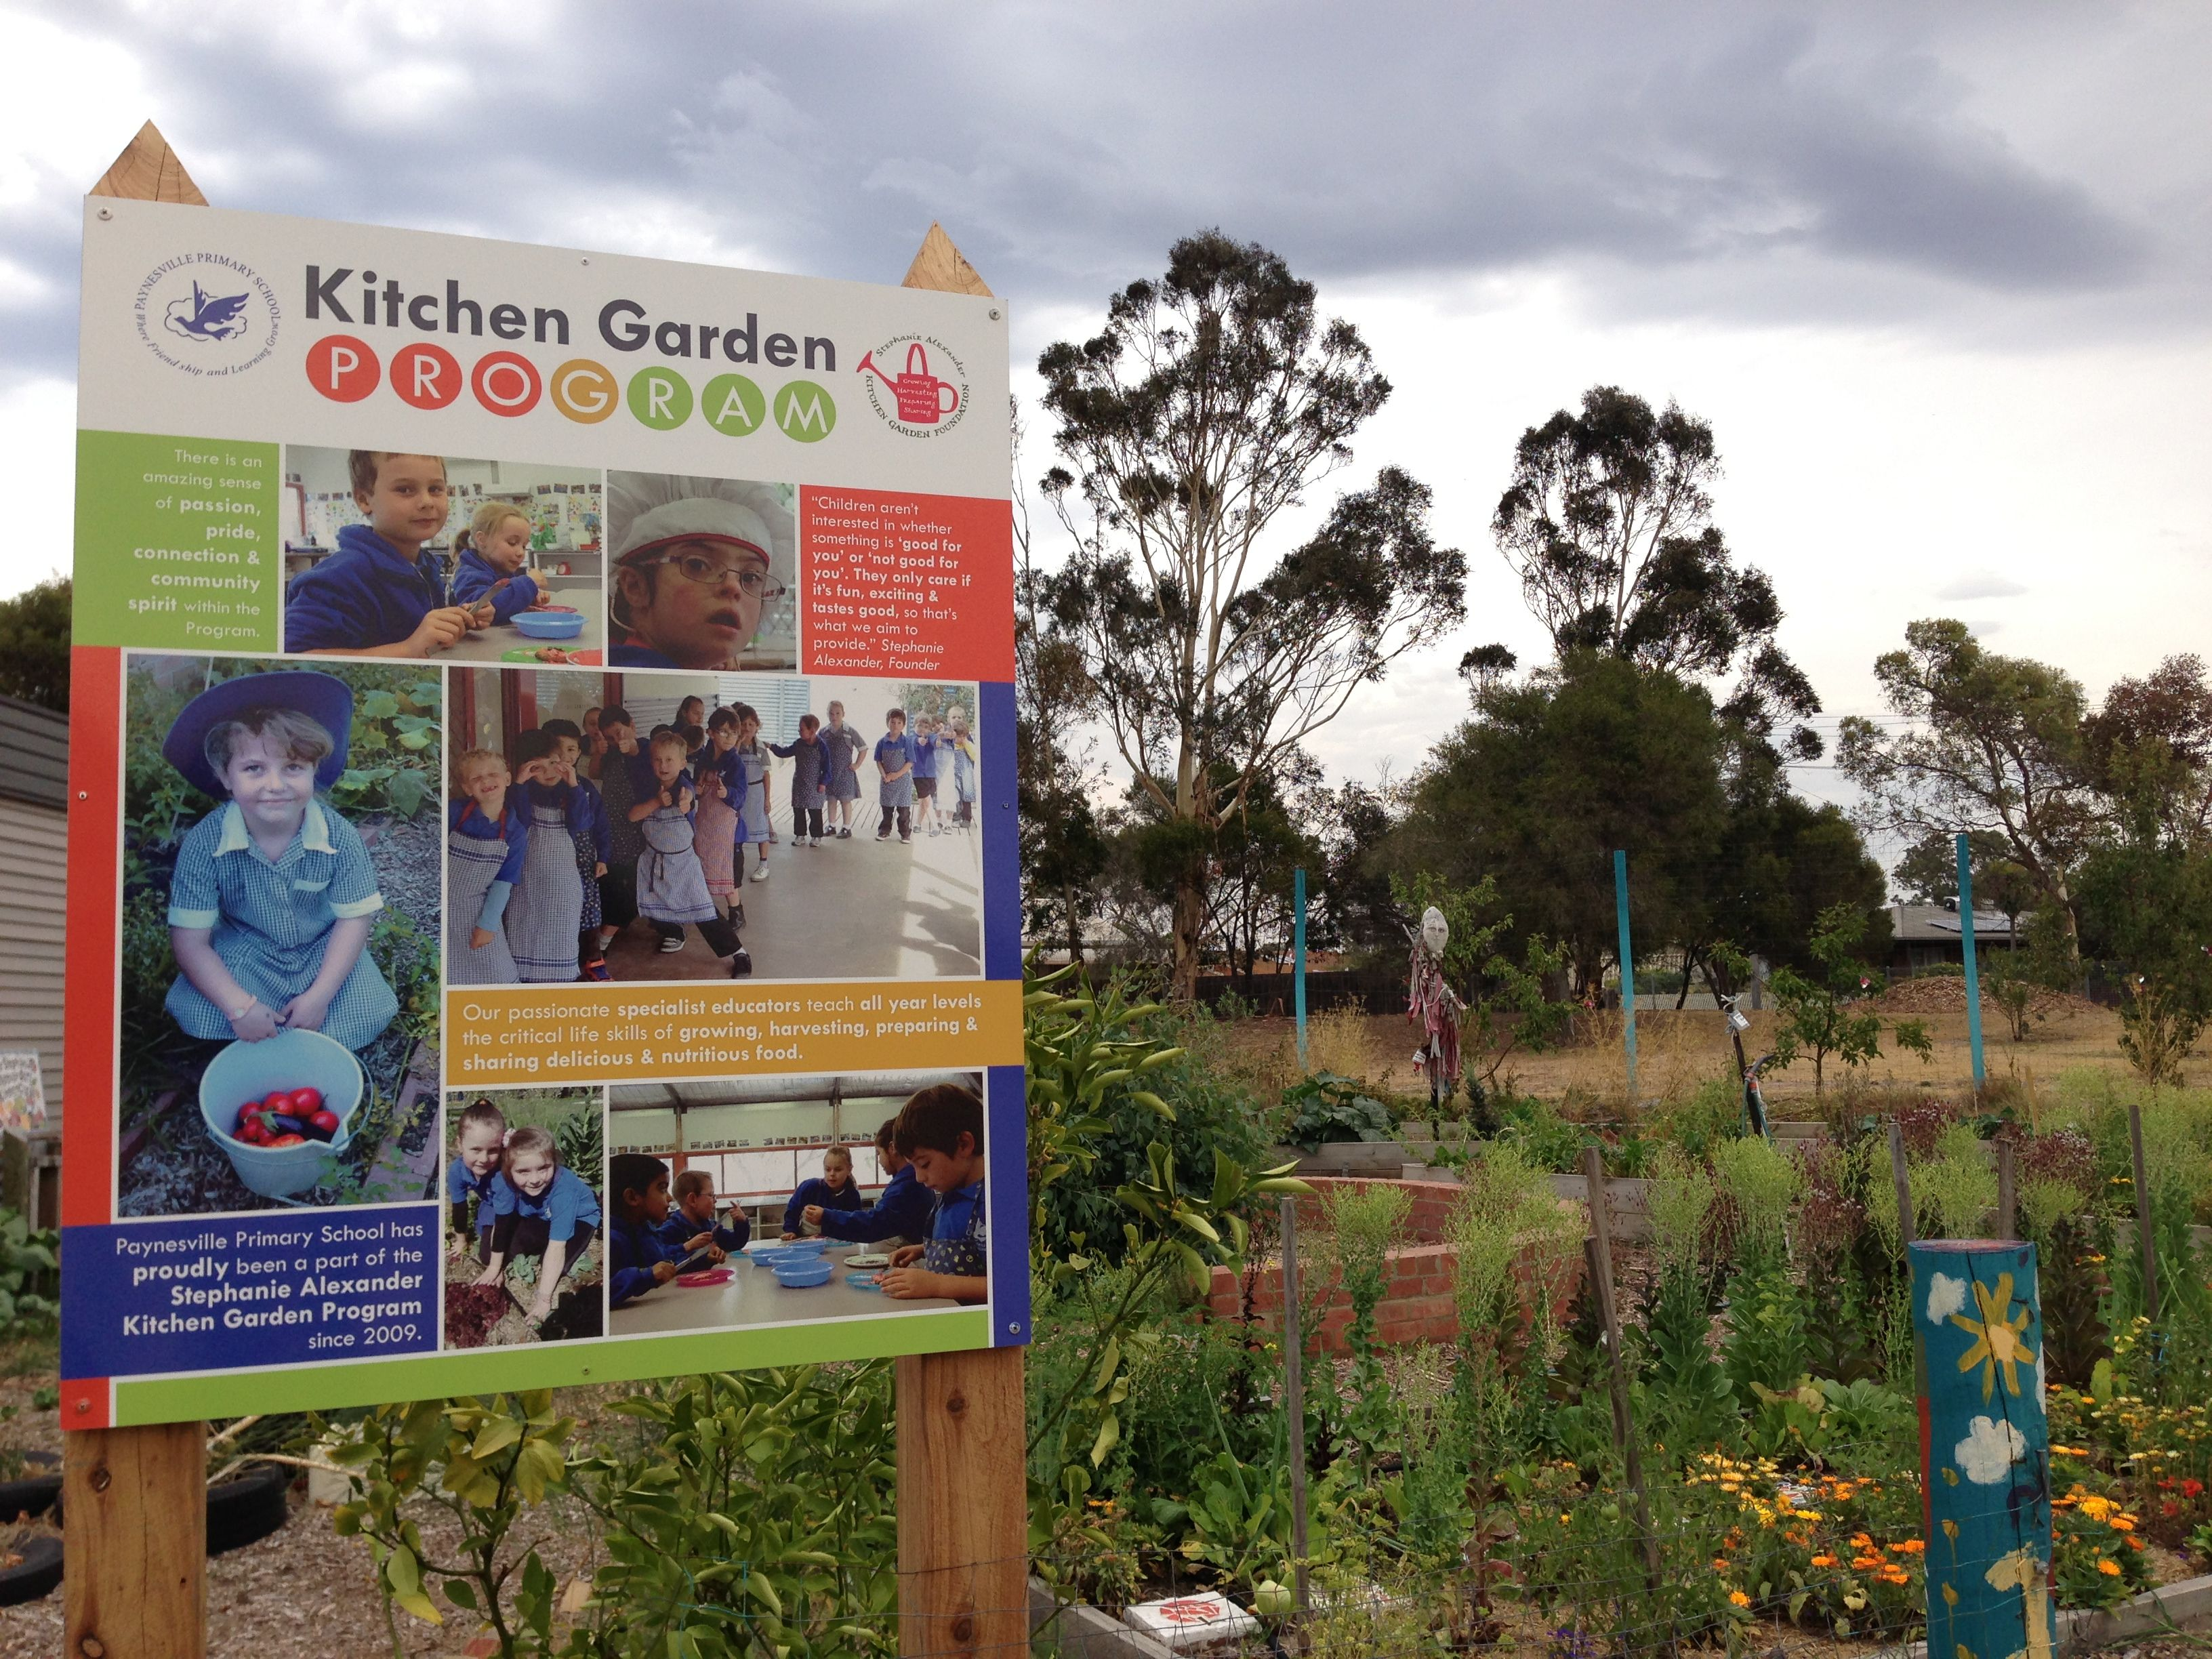 Kitchen Garden Program Pinterest O The Worlds Catalog Of Ideas